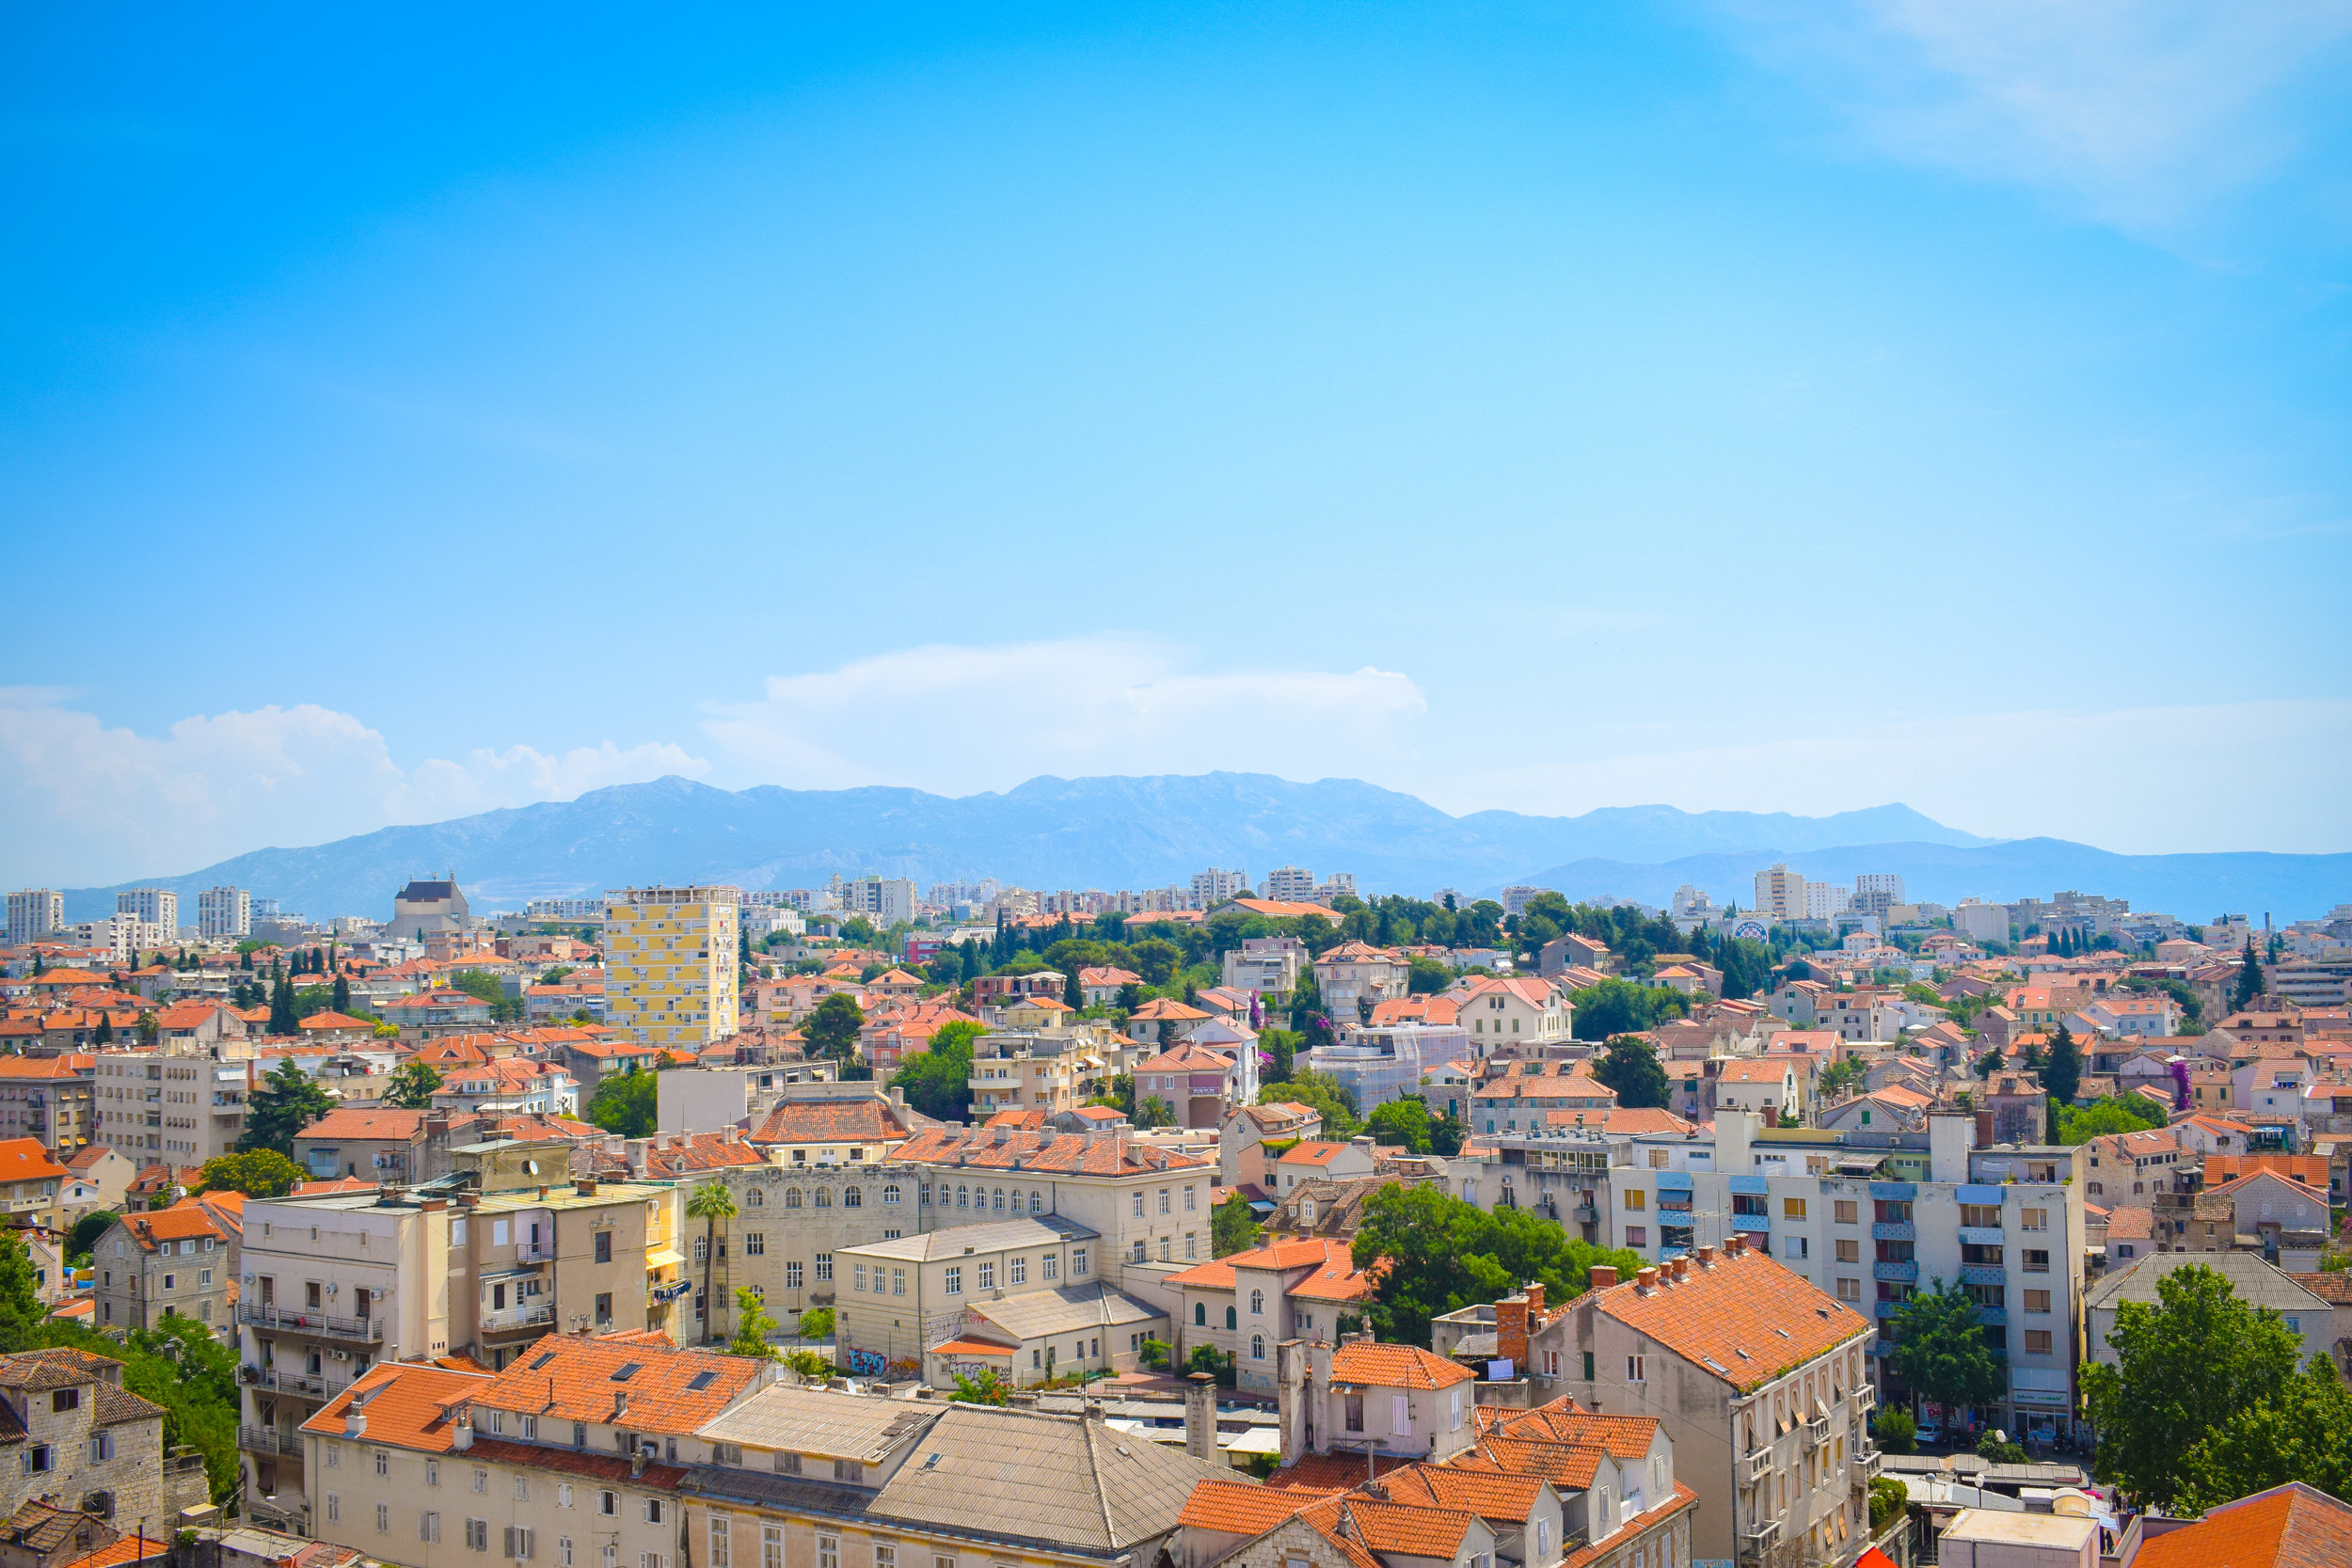 Overlooking the terracotta roofs of Croatian city Split.